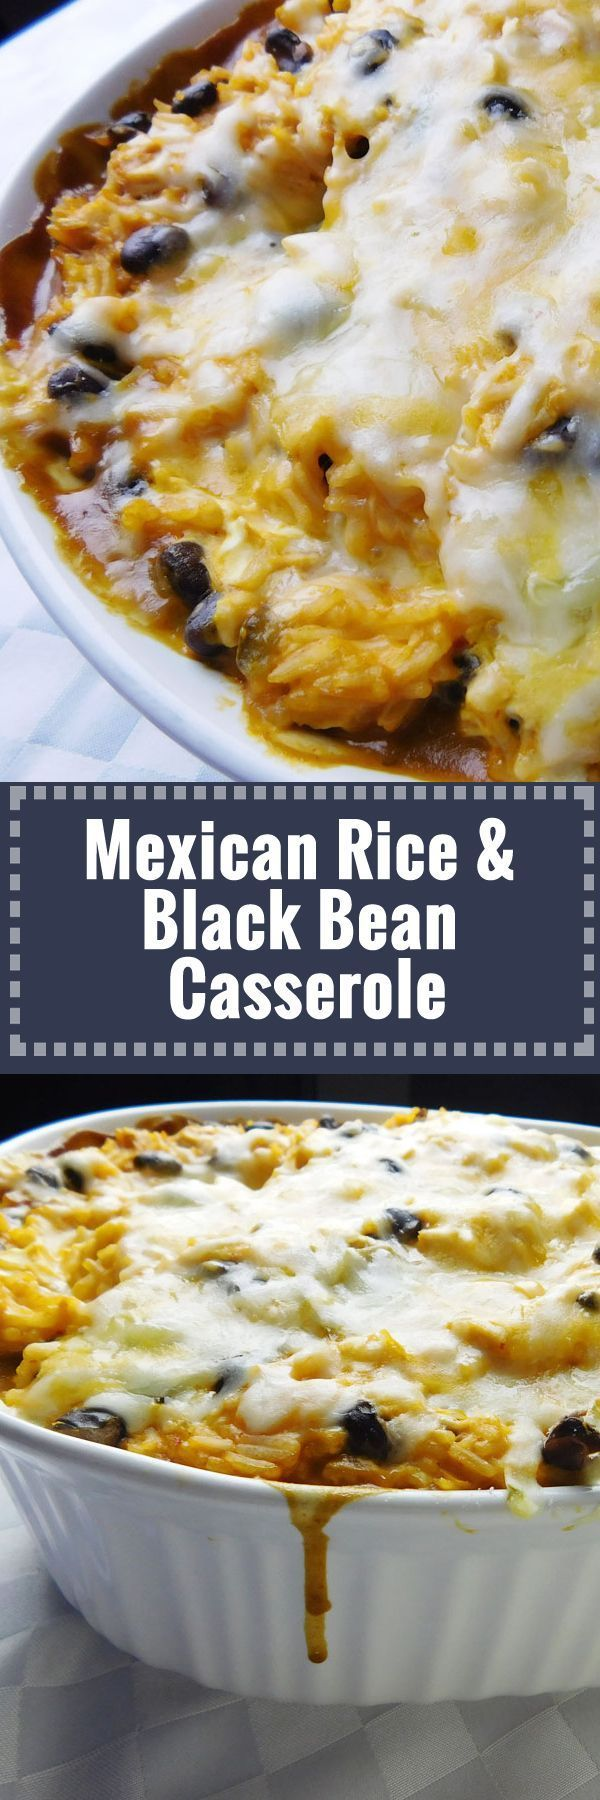 Mexican Rice and Black Bean Casserole. The flavors in this recipe are incredible! Chicken, enchilada sauce etc. Yum :)